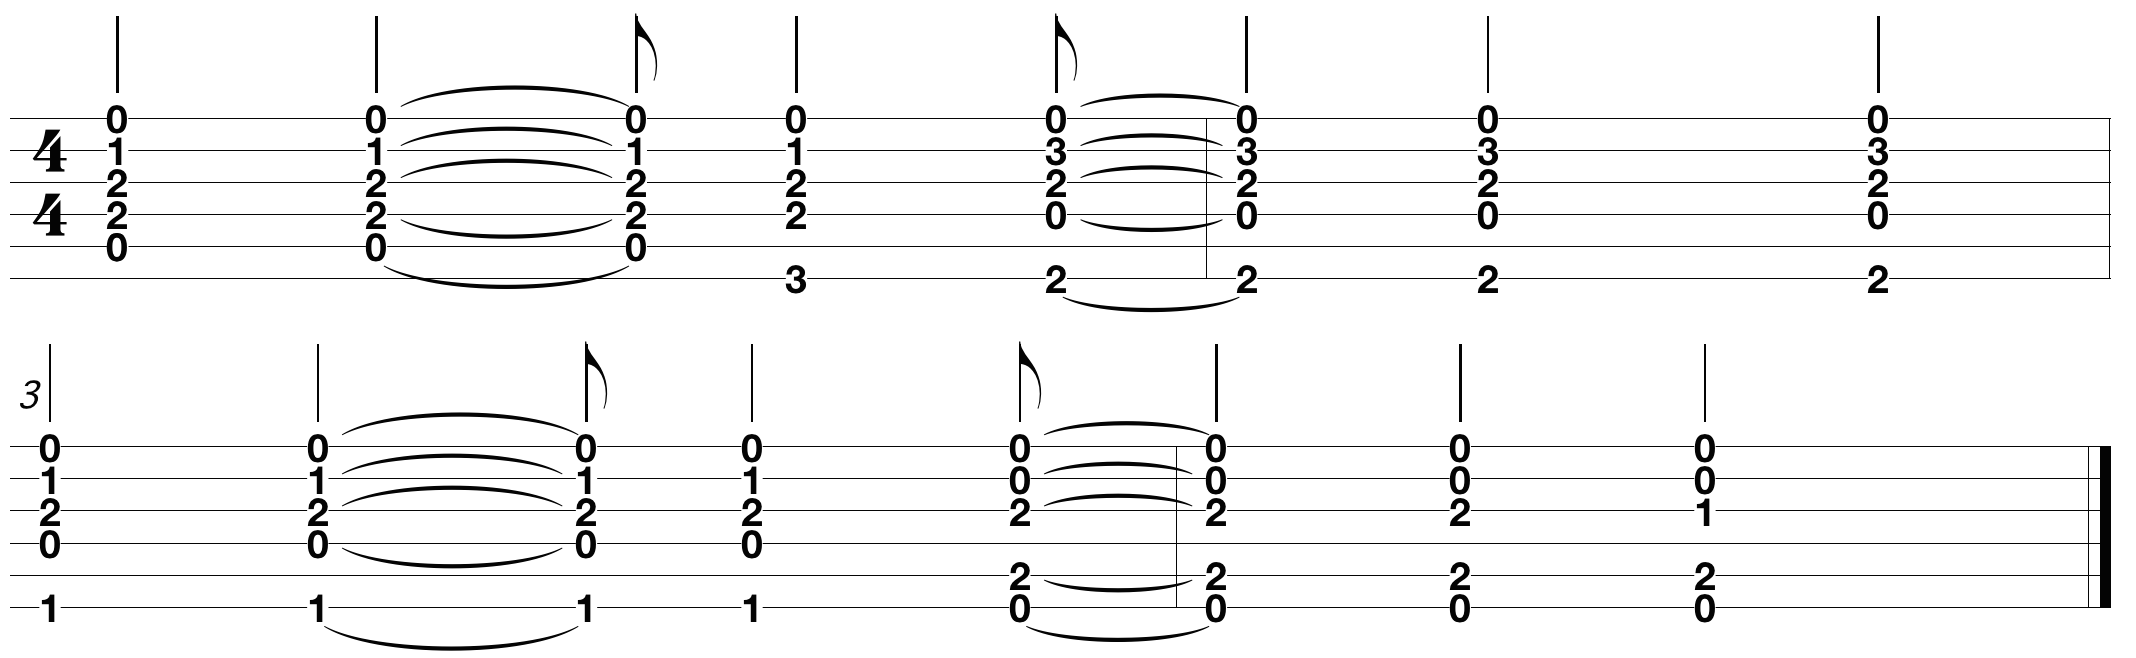 learn-guitar-for-free_2.png